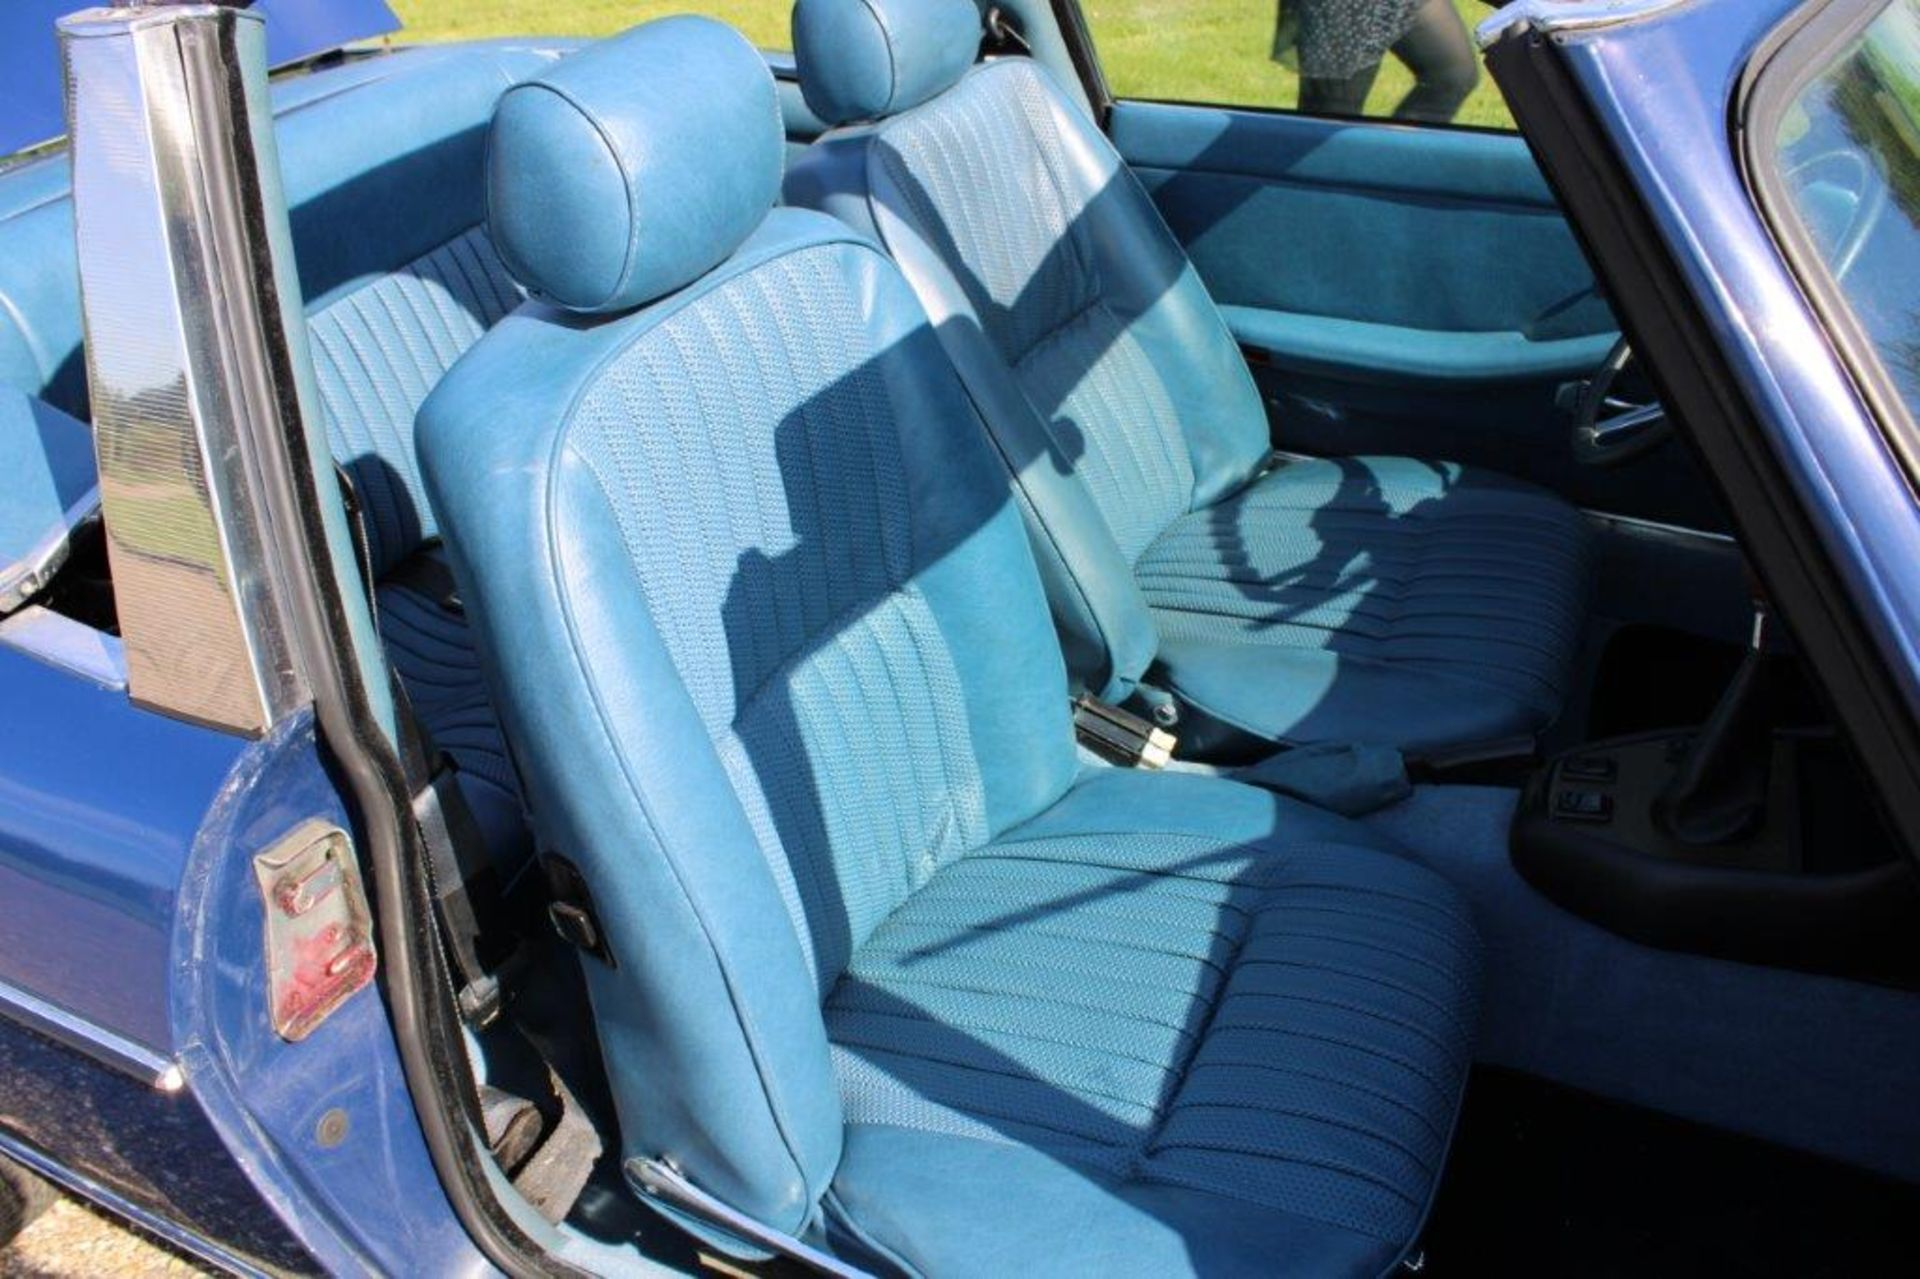 1973 Triumph Stag 3.0 LHD - Image 16 of 28